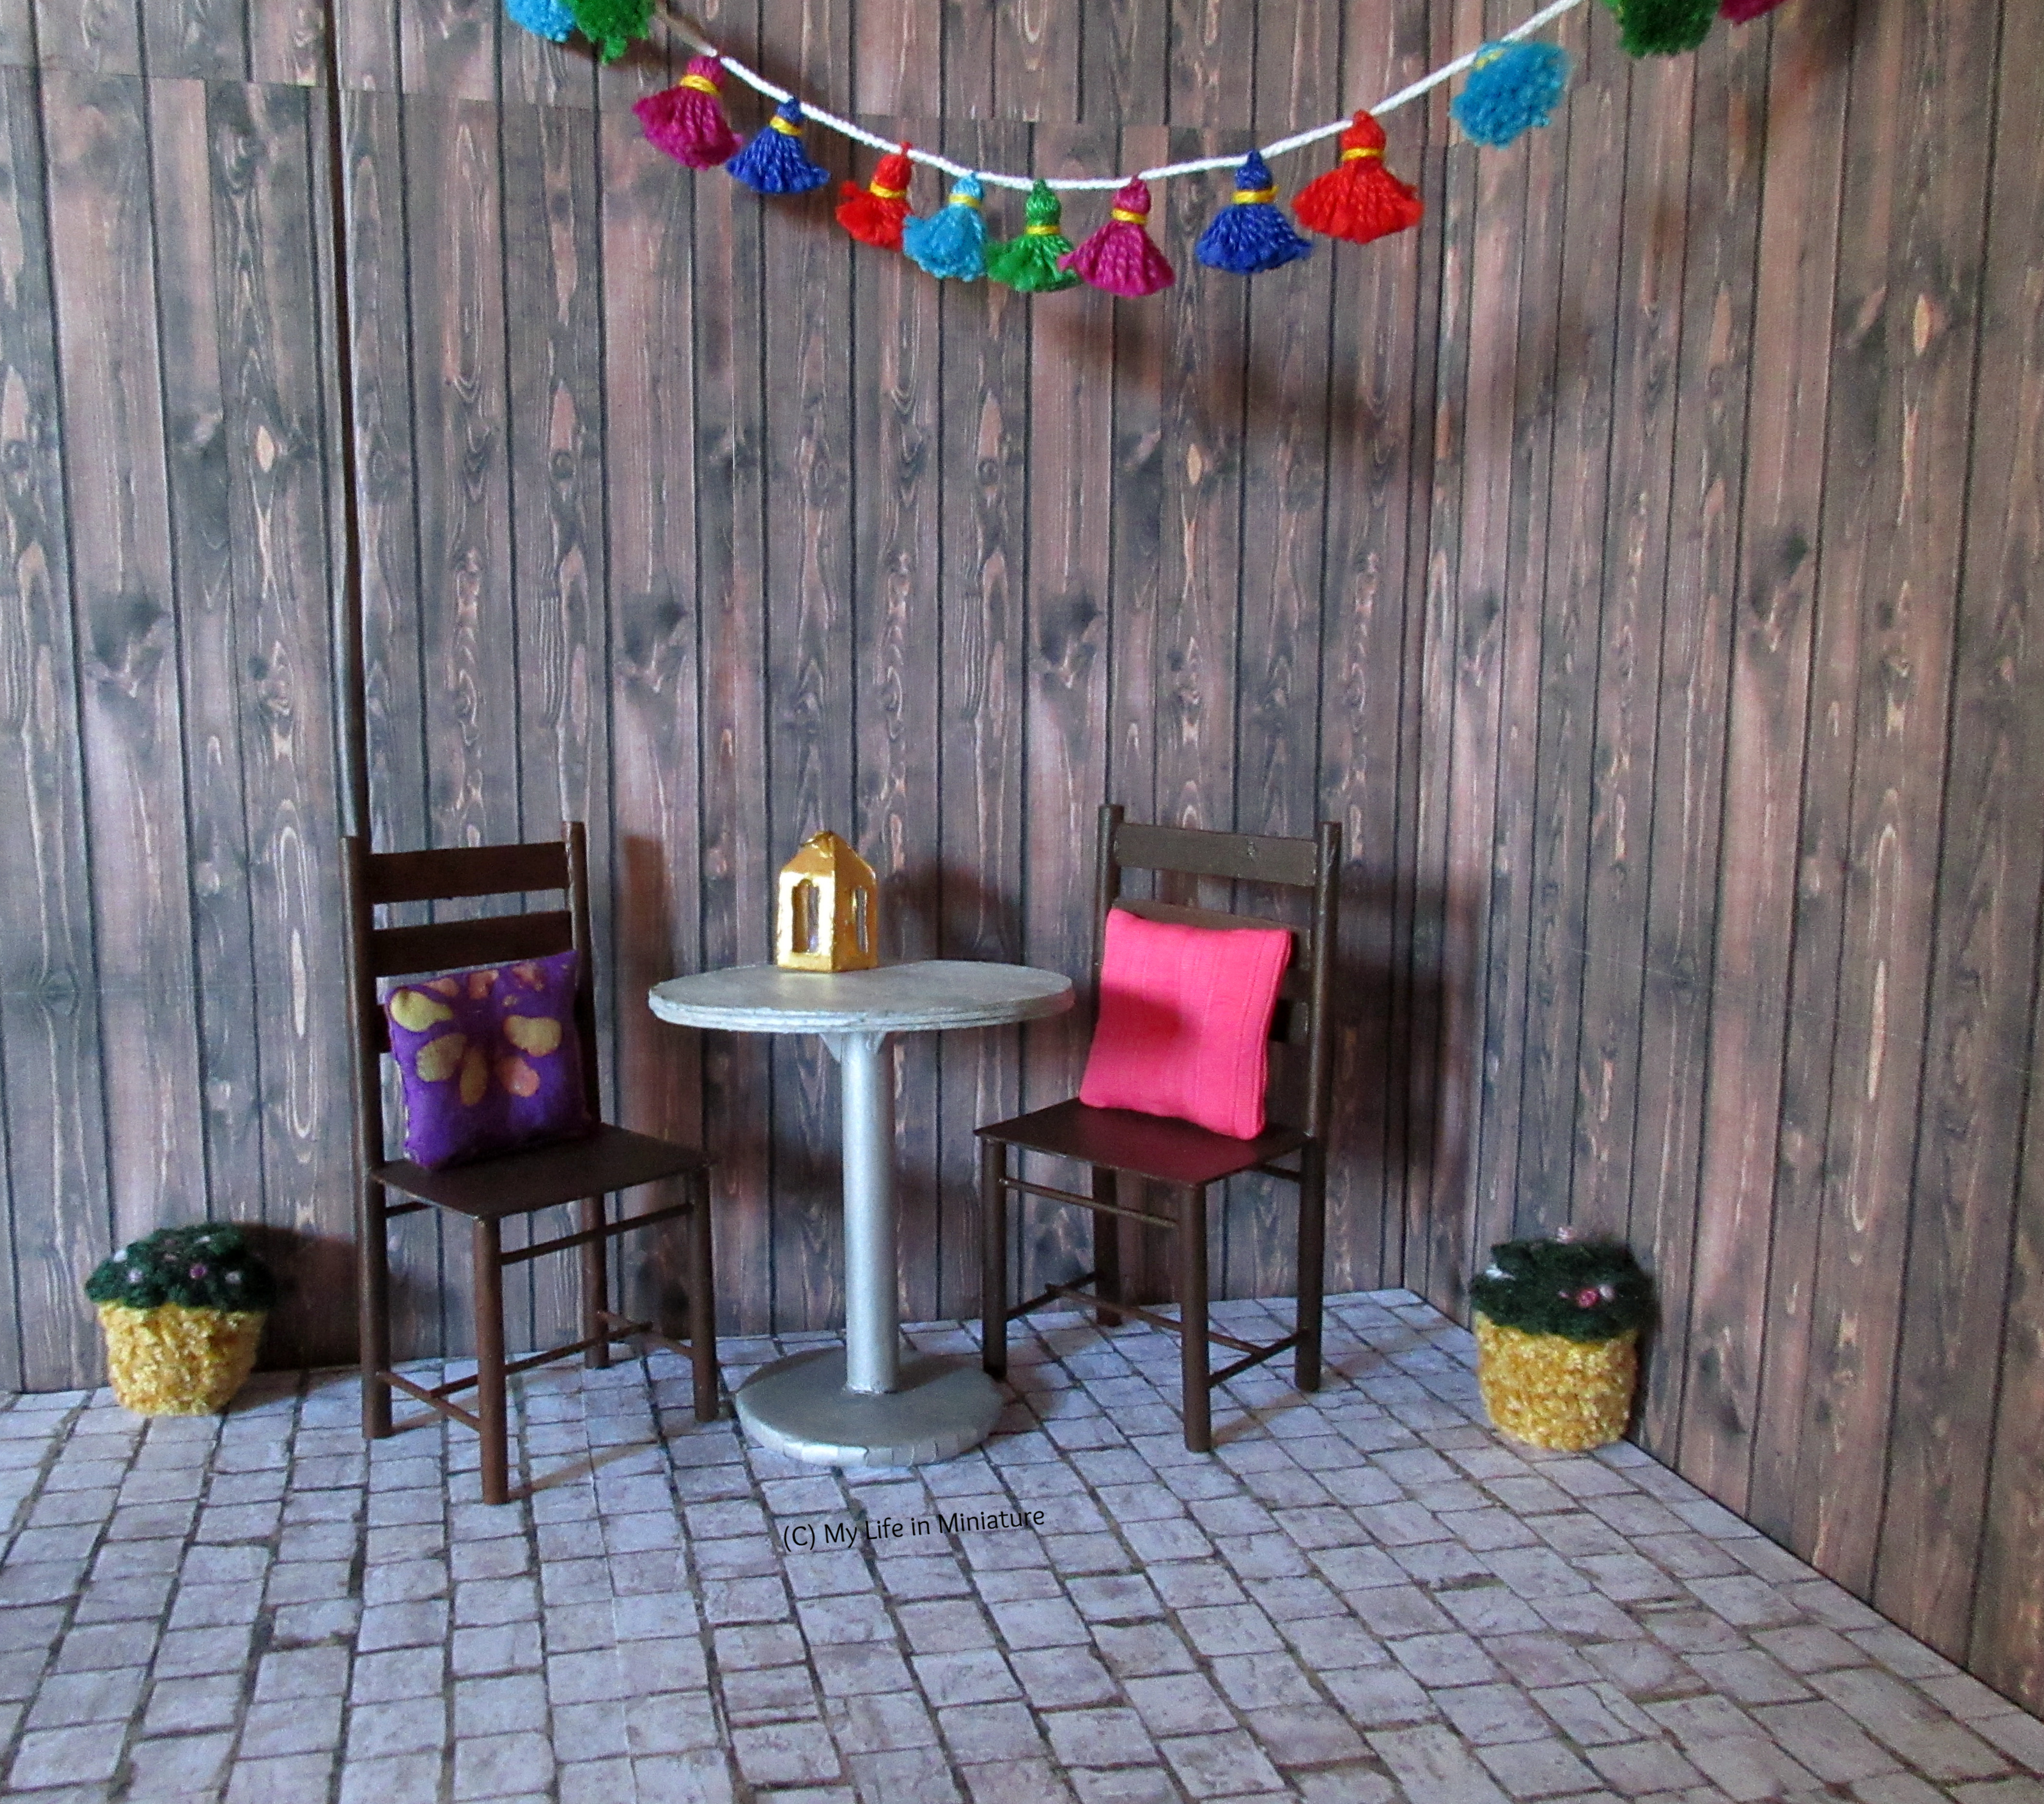 The courtyard outside Tea at Yaz's is pictured. It has dark wood walls and cobblestones, and is furnished with two brown chairs and a silver circular table. Two small flower pots are also on the floor, and a garland of multi-coloured tassels hangs across the top.